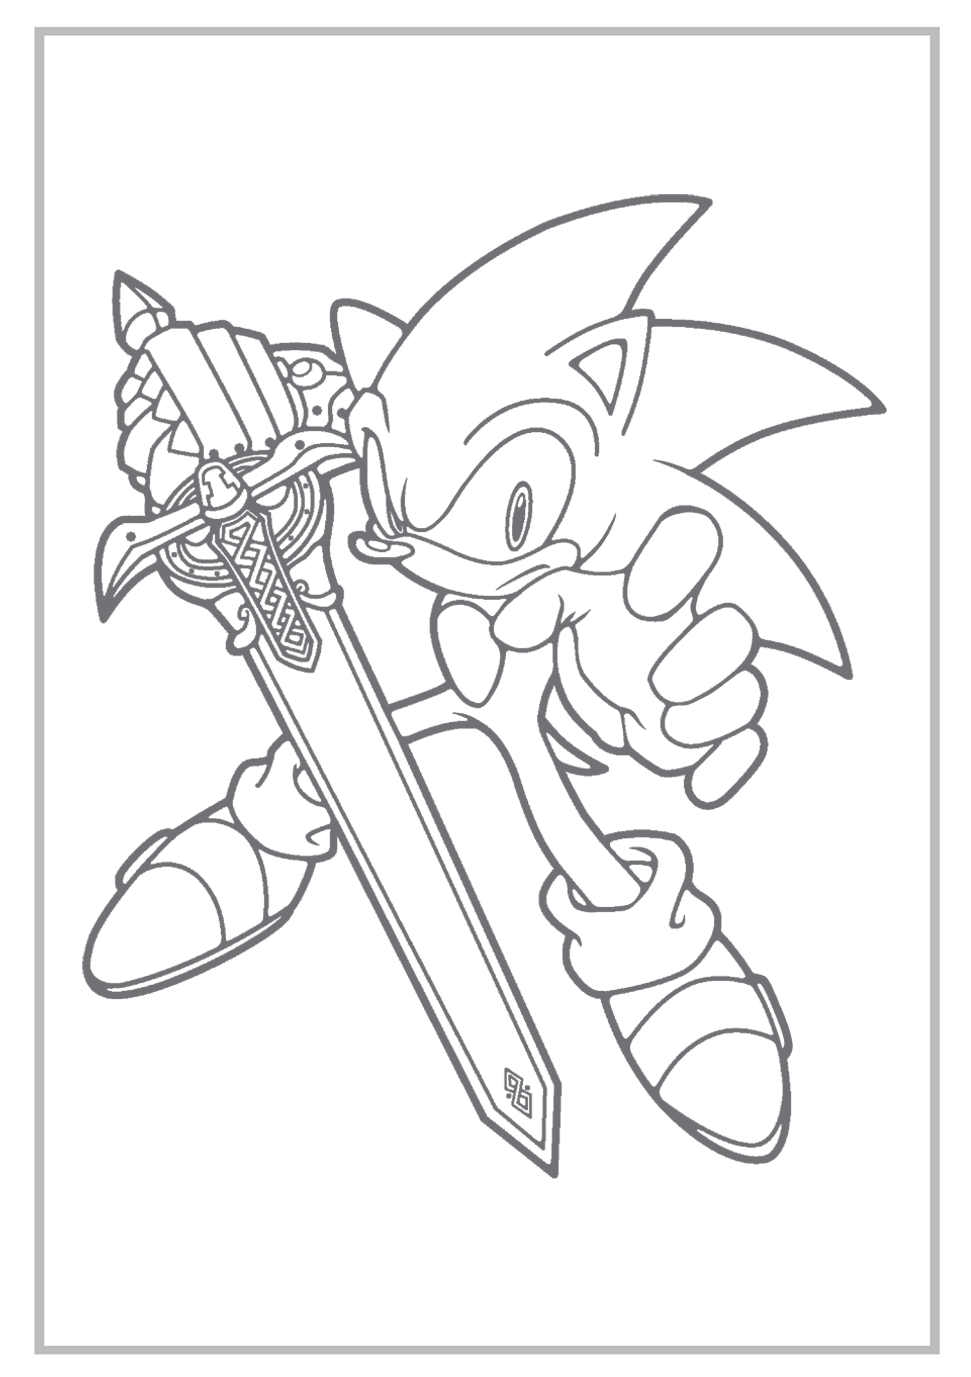 Sonic Coloring Pages   Sonic The Hedgehog Coloring Pages Free - Sonic Coloring Pages Free Printable